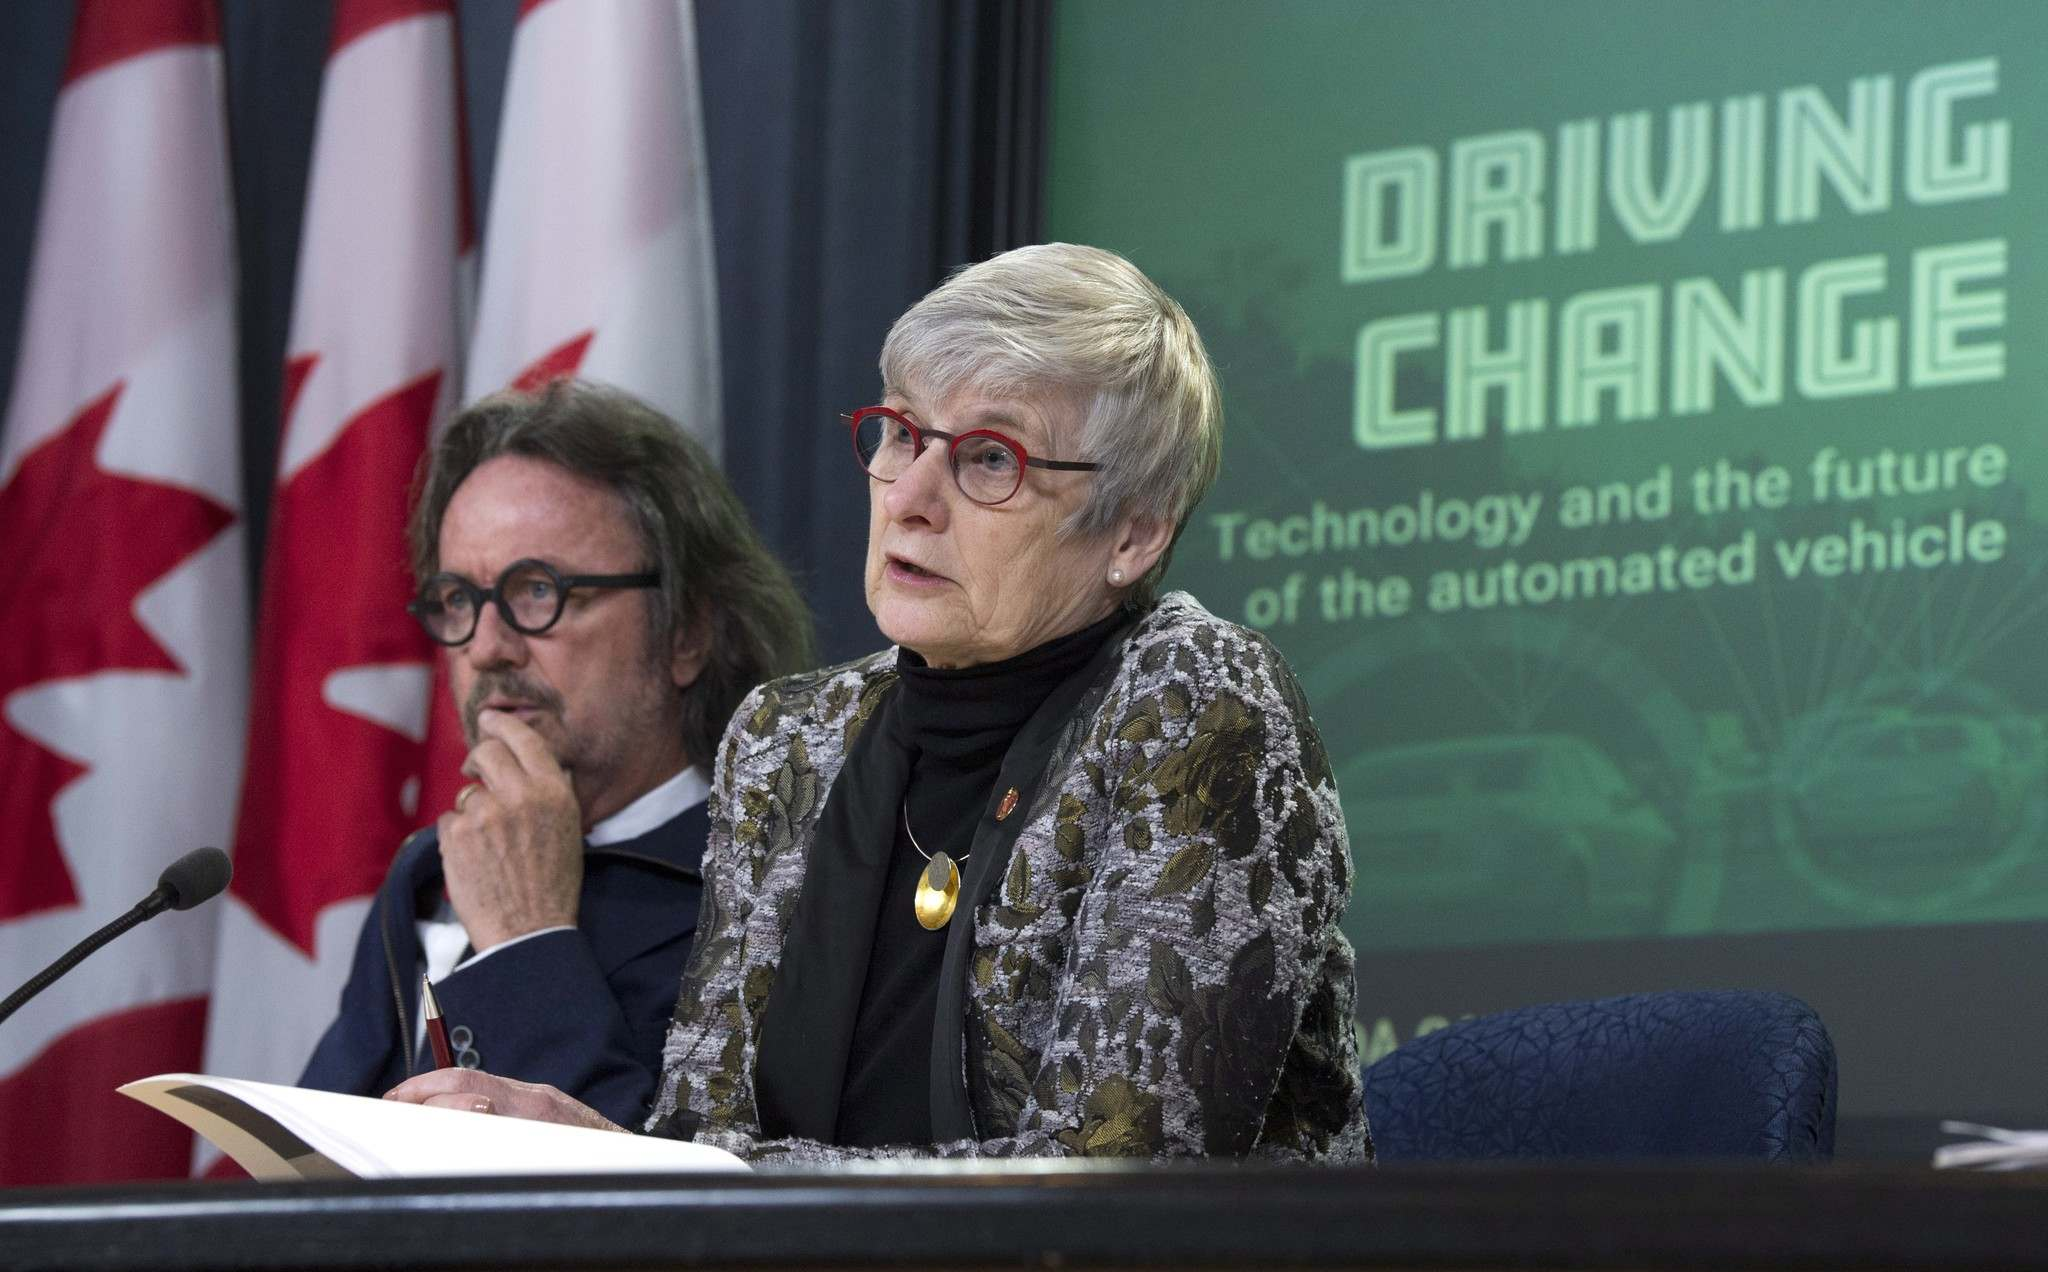 THE CANADIAN PRESS/Adrian Wyld</p><p>Senate Committee on Transport and Communications deputy chair Senator Patricia Bovey, right, during a news conference regarding connected and automated vehicles in Ottawa, Monday.</p>